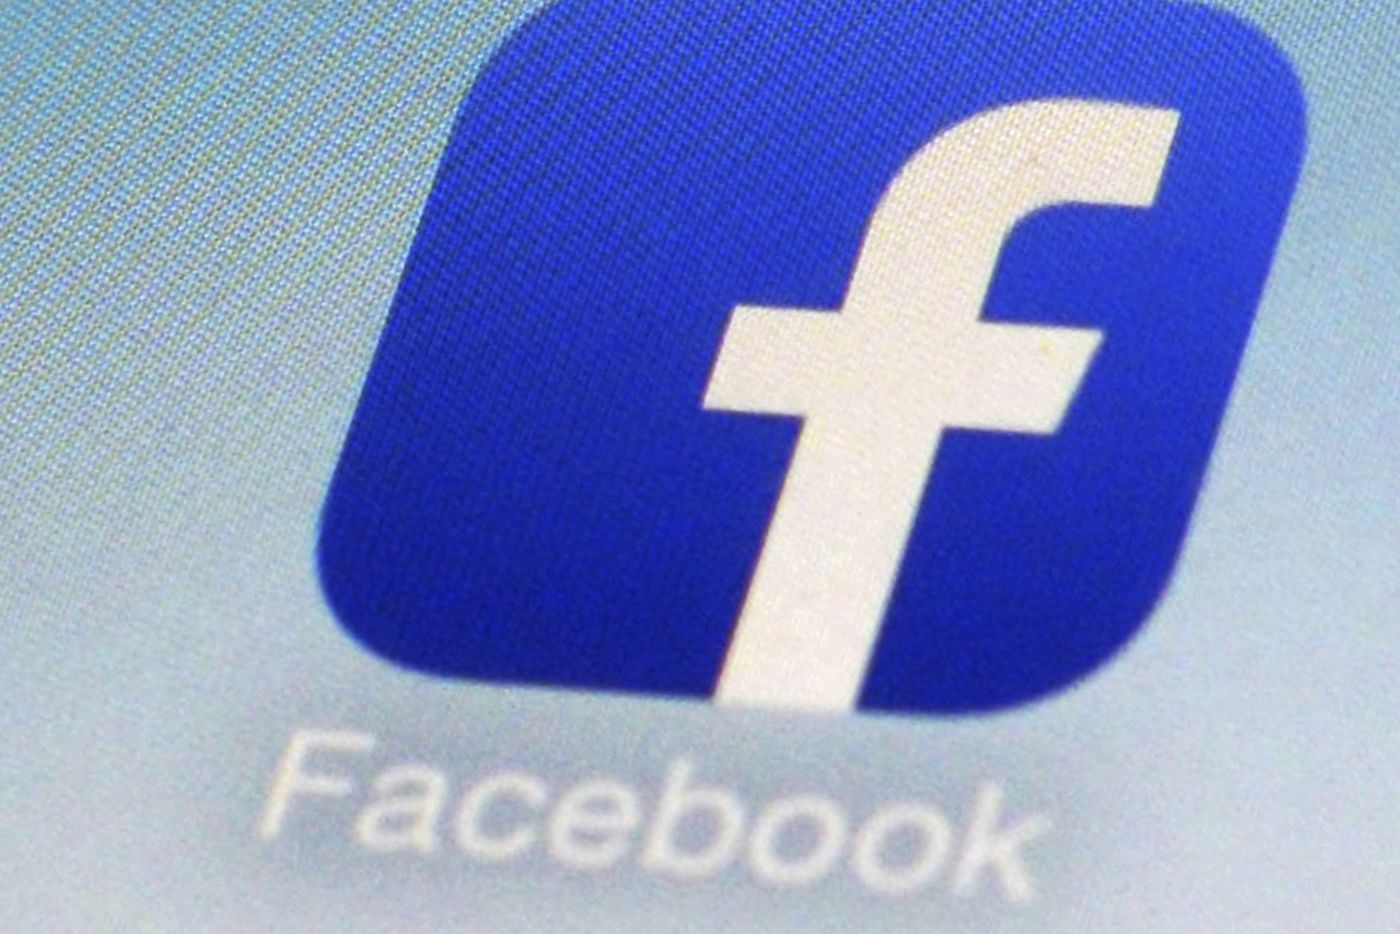 Nearly 30mn Facebook user data accessed by hackers again